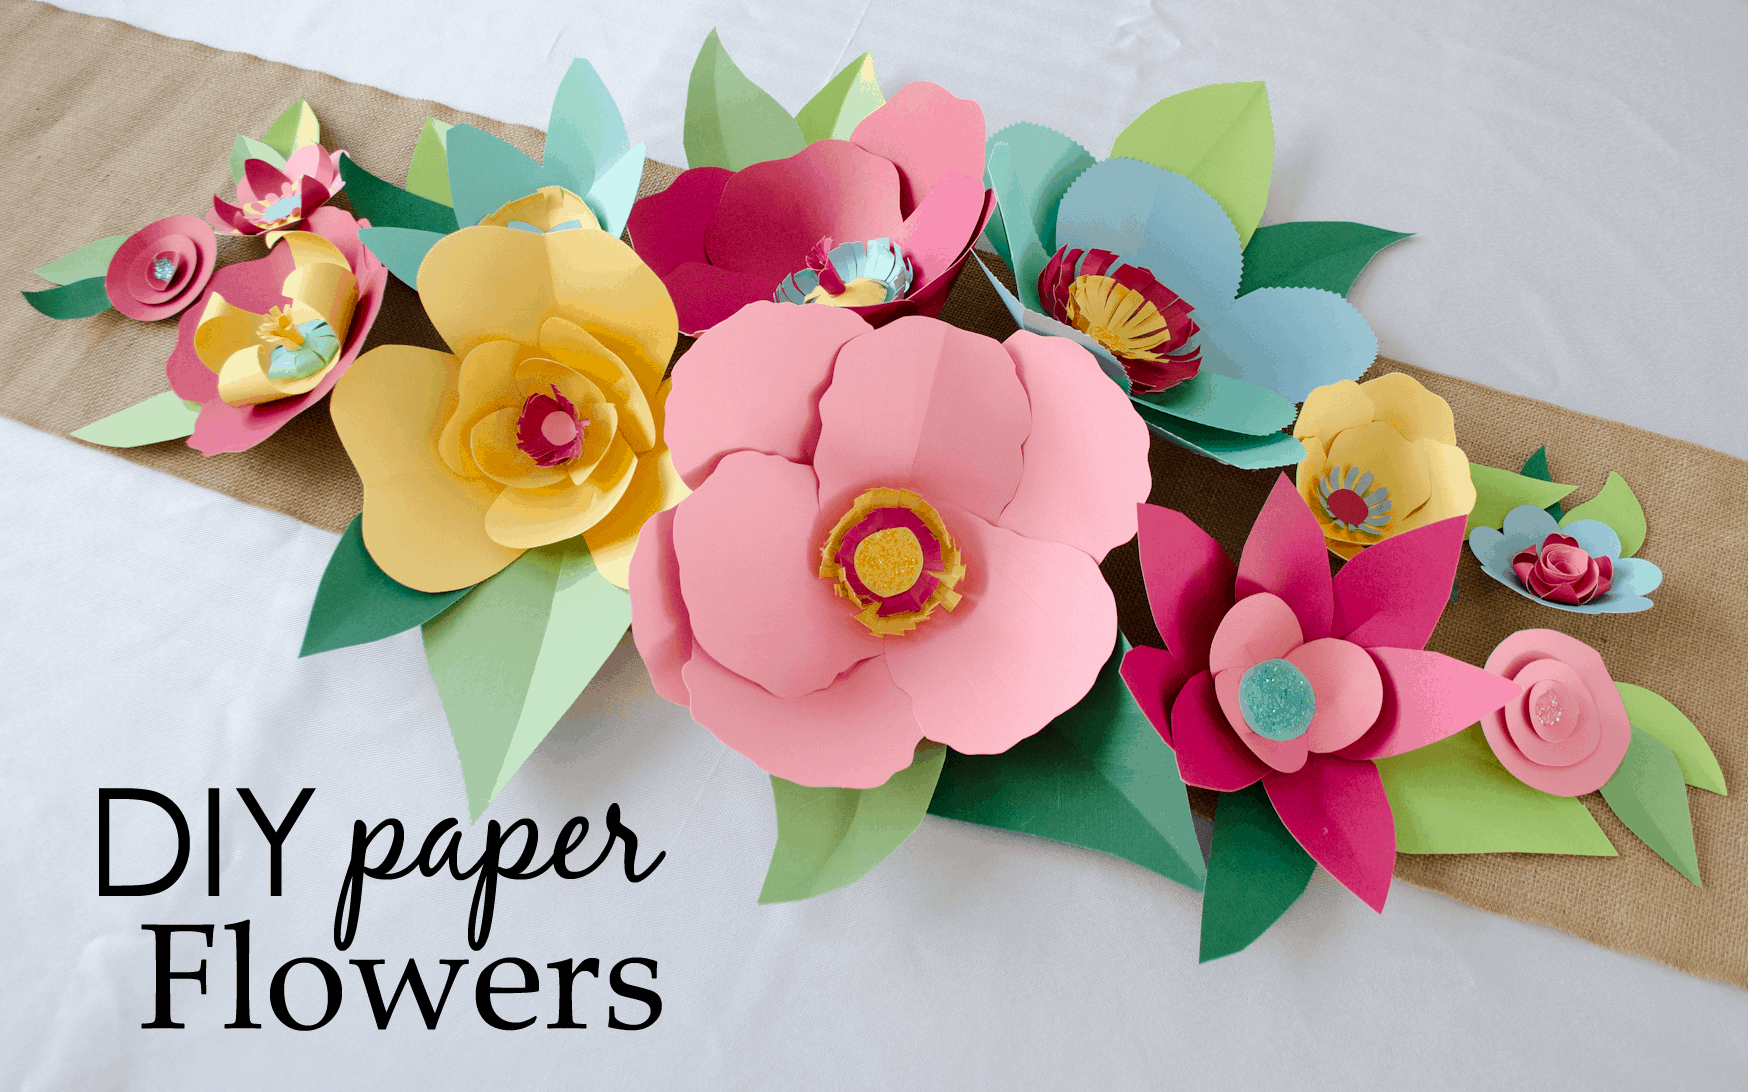 50 diy flower craft ideas to try diy paper flowers izmirmasajfo